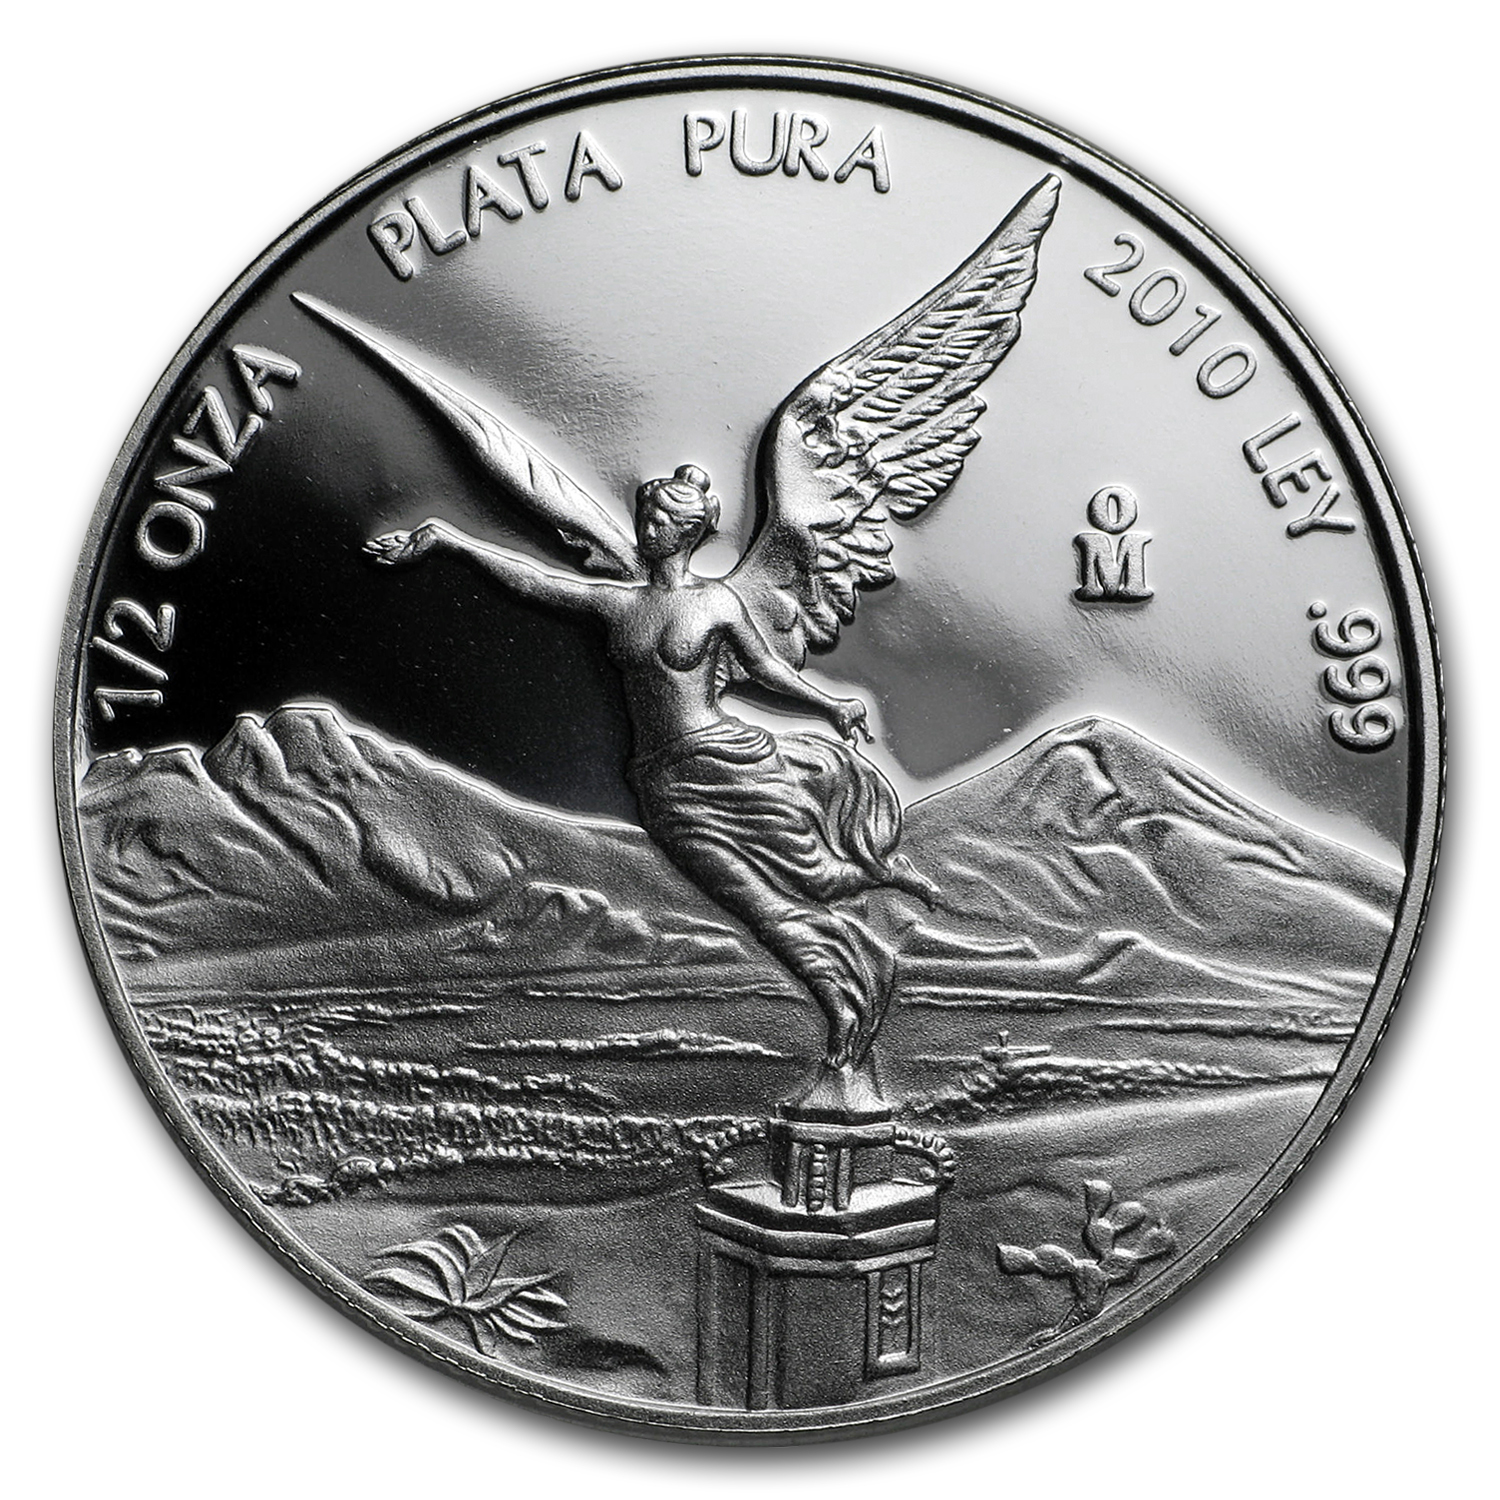 2010 1/2 oz Silver Mexican Libertad - Proof (In Capsule)